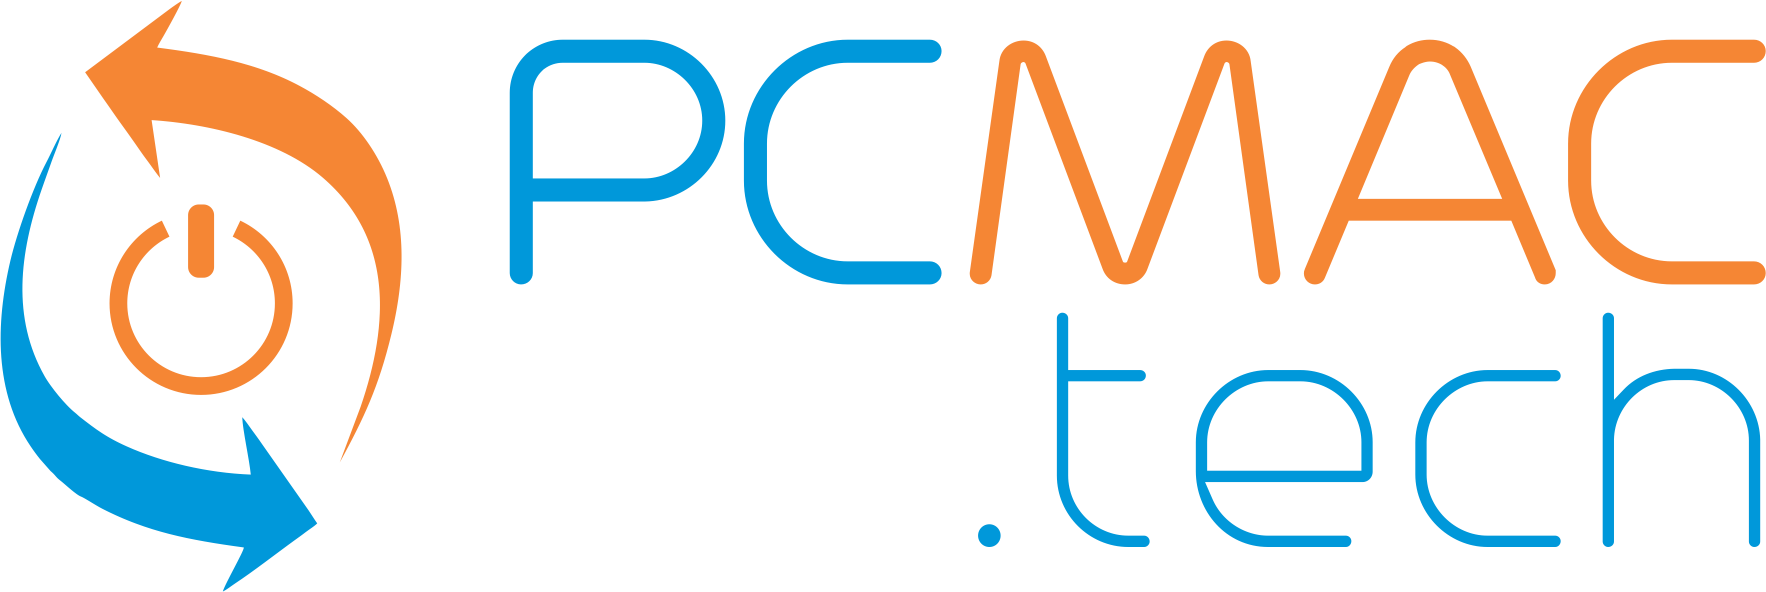 PCMAC.tech | Computer Repair Ottawa, ON